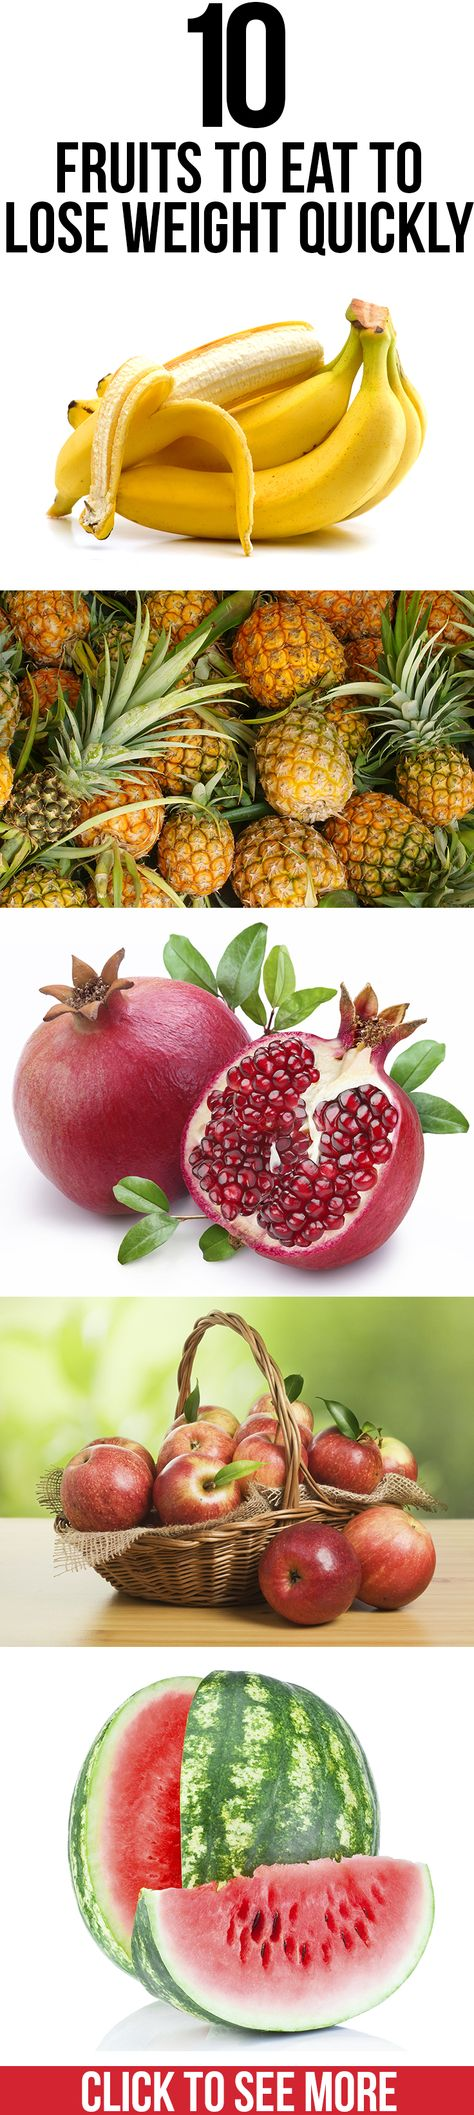 A diet for losing weight is all about eating the right things. How about adding fruits to your diet then. Here is a list of the best fruits for weight loss. #fruits #weightloss #health #vegetarian #recipes #veggie #recipe #healthy